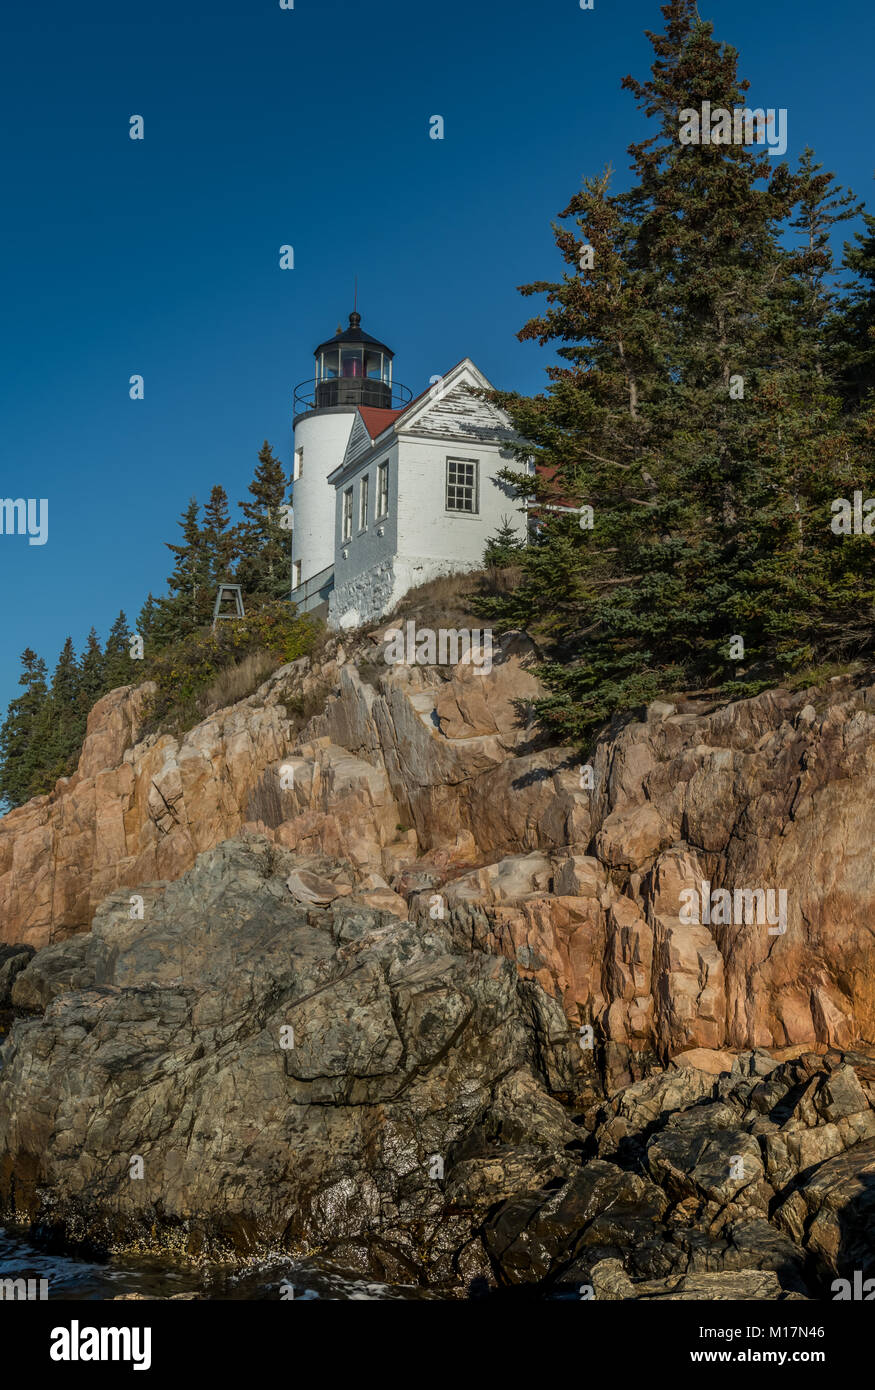 Bass Harbor Lighthouse and Pine Trees - Stock Image